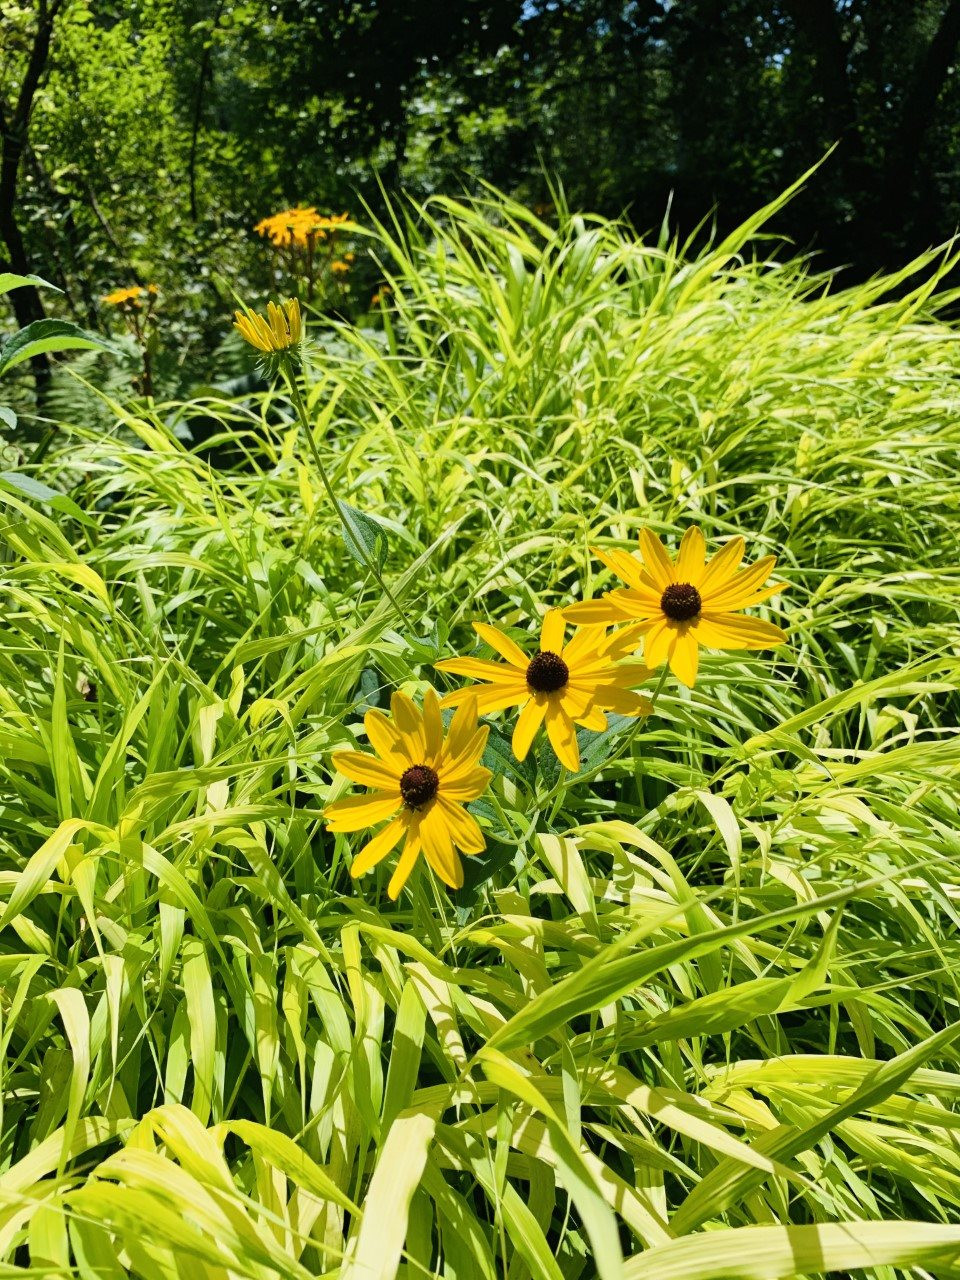 Lemon Lime wonders in the woodland gardens sun pocket: Hakonechloa grass (lime green) with Black-eyed Susan flowers planted in a border.